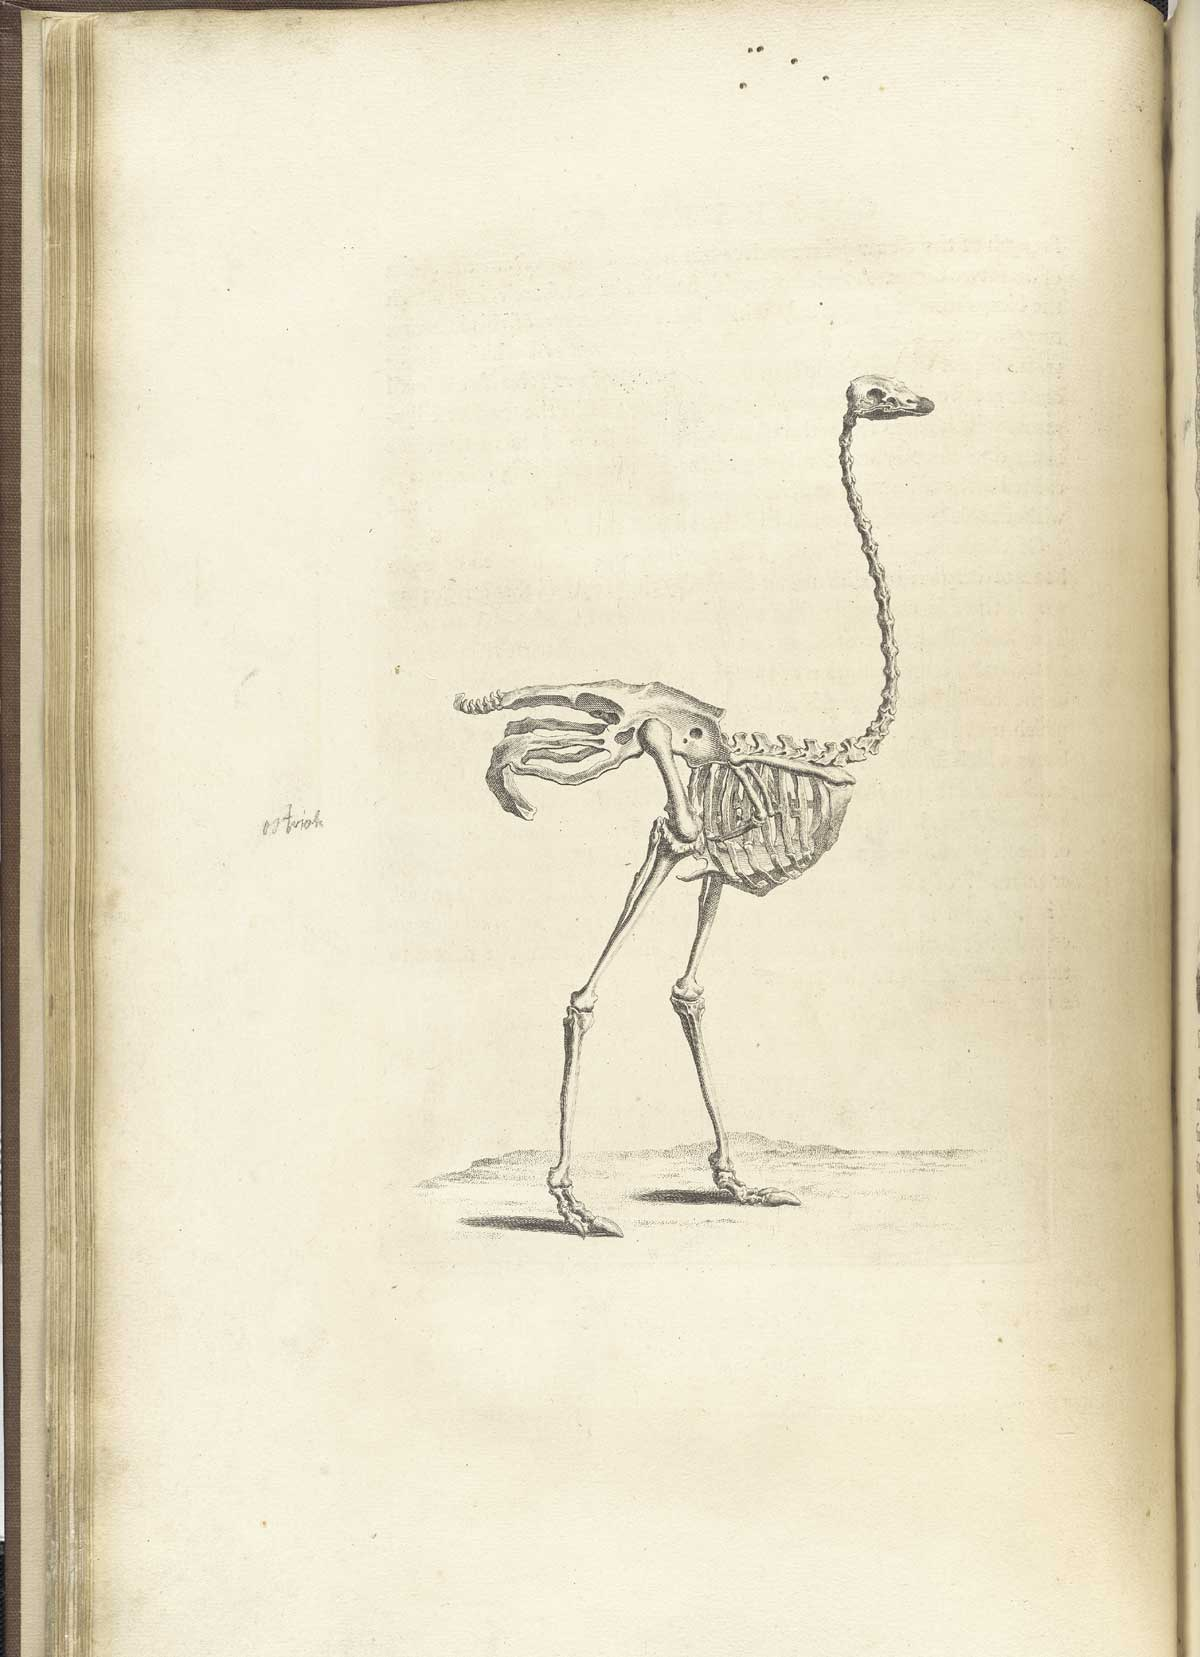 ostrich skeleton diagram obd2 to obd1 jumper harness historical anatomies on the web william cheselden home from s osteographia nlm call no wz 260 c499o